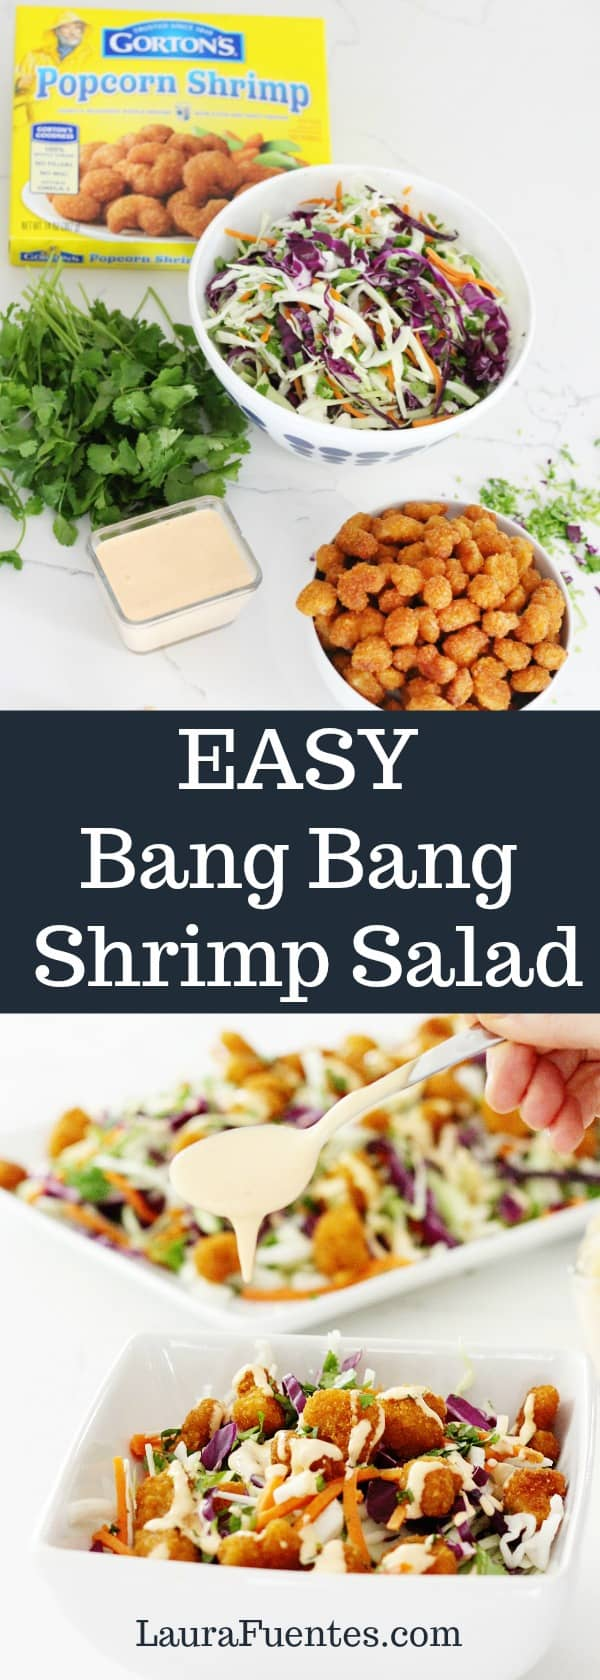 Hip, healthy, and fast: Baked Bang Bang Shrimp Salad that comes together in a flash! It's the perfect quick midweek meal or fantastic for entertaining! #ad @gortonsseafood #TrustGortons